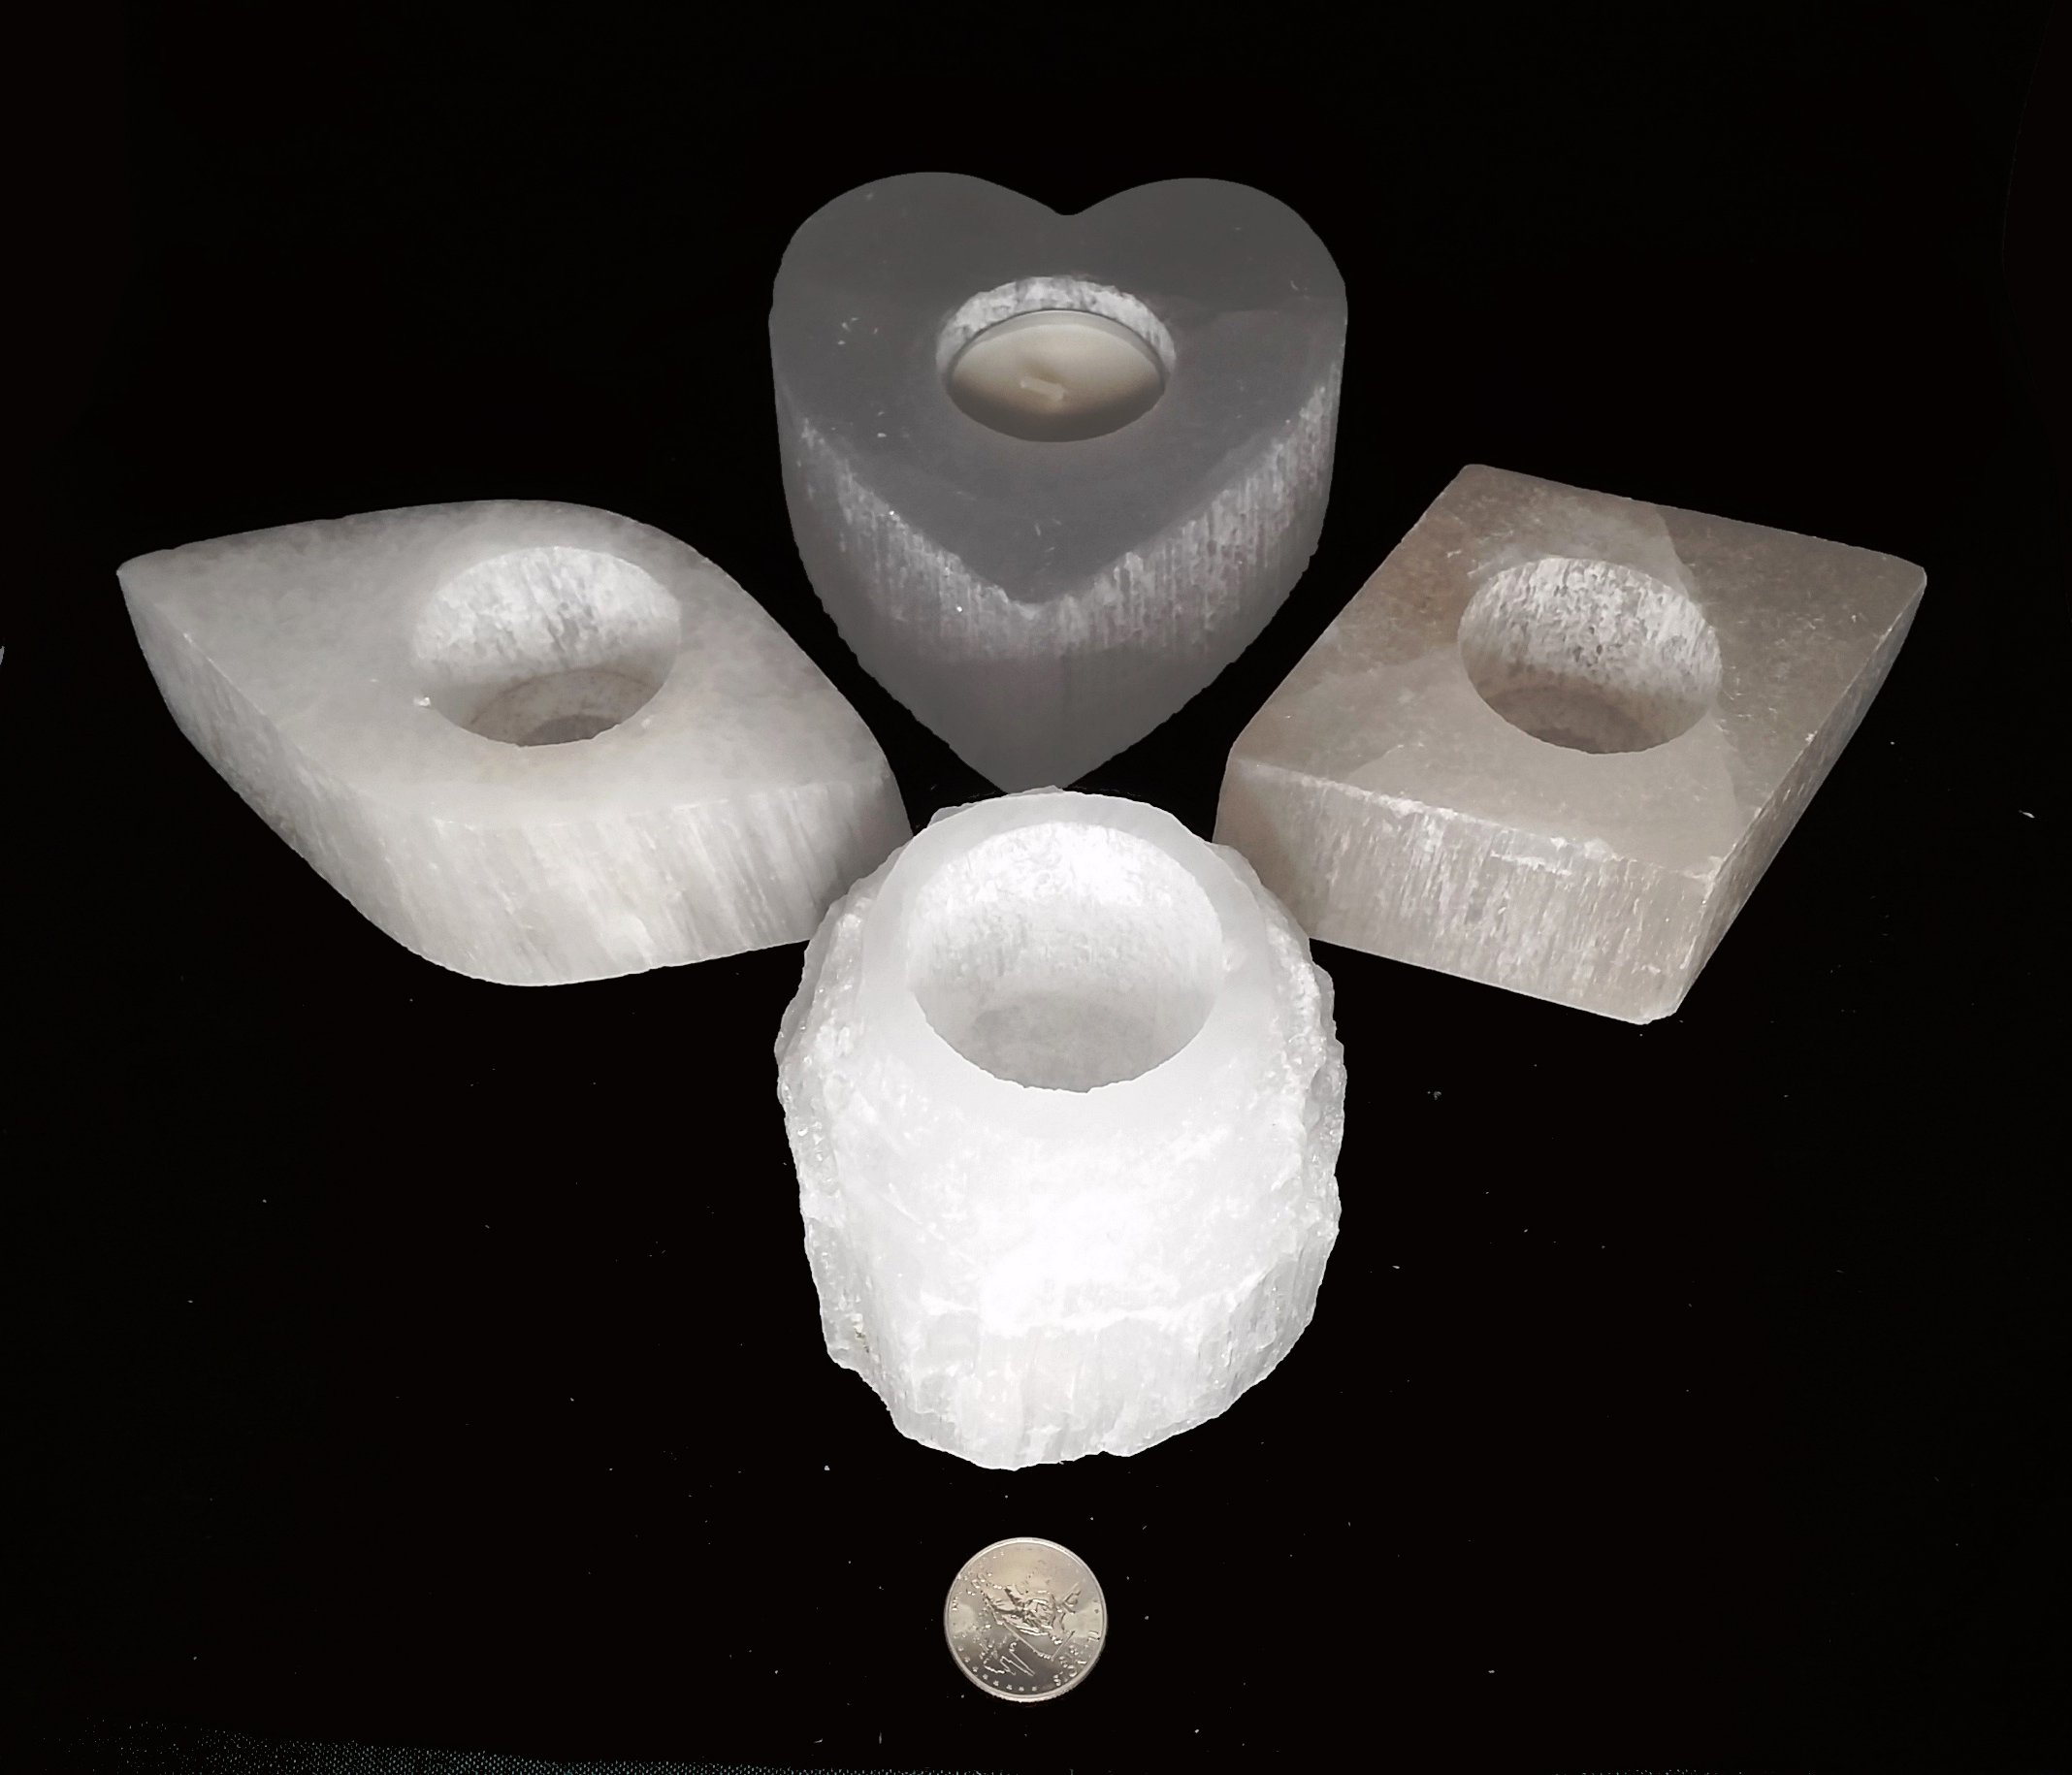 An amazing stone of cleansing and clearing, Selenite naturally dispels negative energy, removes energy blocks, and charges and amplifies other stones. Never needing clearing of its own, it is a must-have in your home.   These glowing and gorgeous Selenite candleholders will supercharge and cleanse you and your home with color, light, and high vibrations.  a rainbow light-changing box!